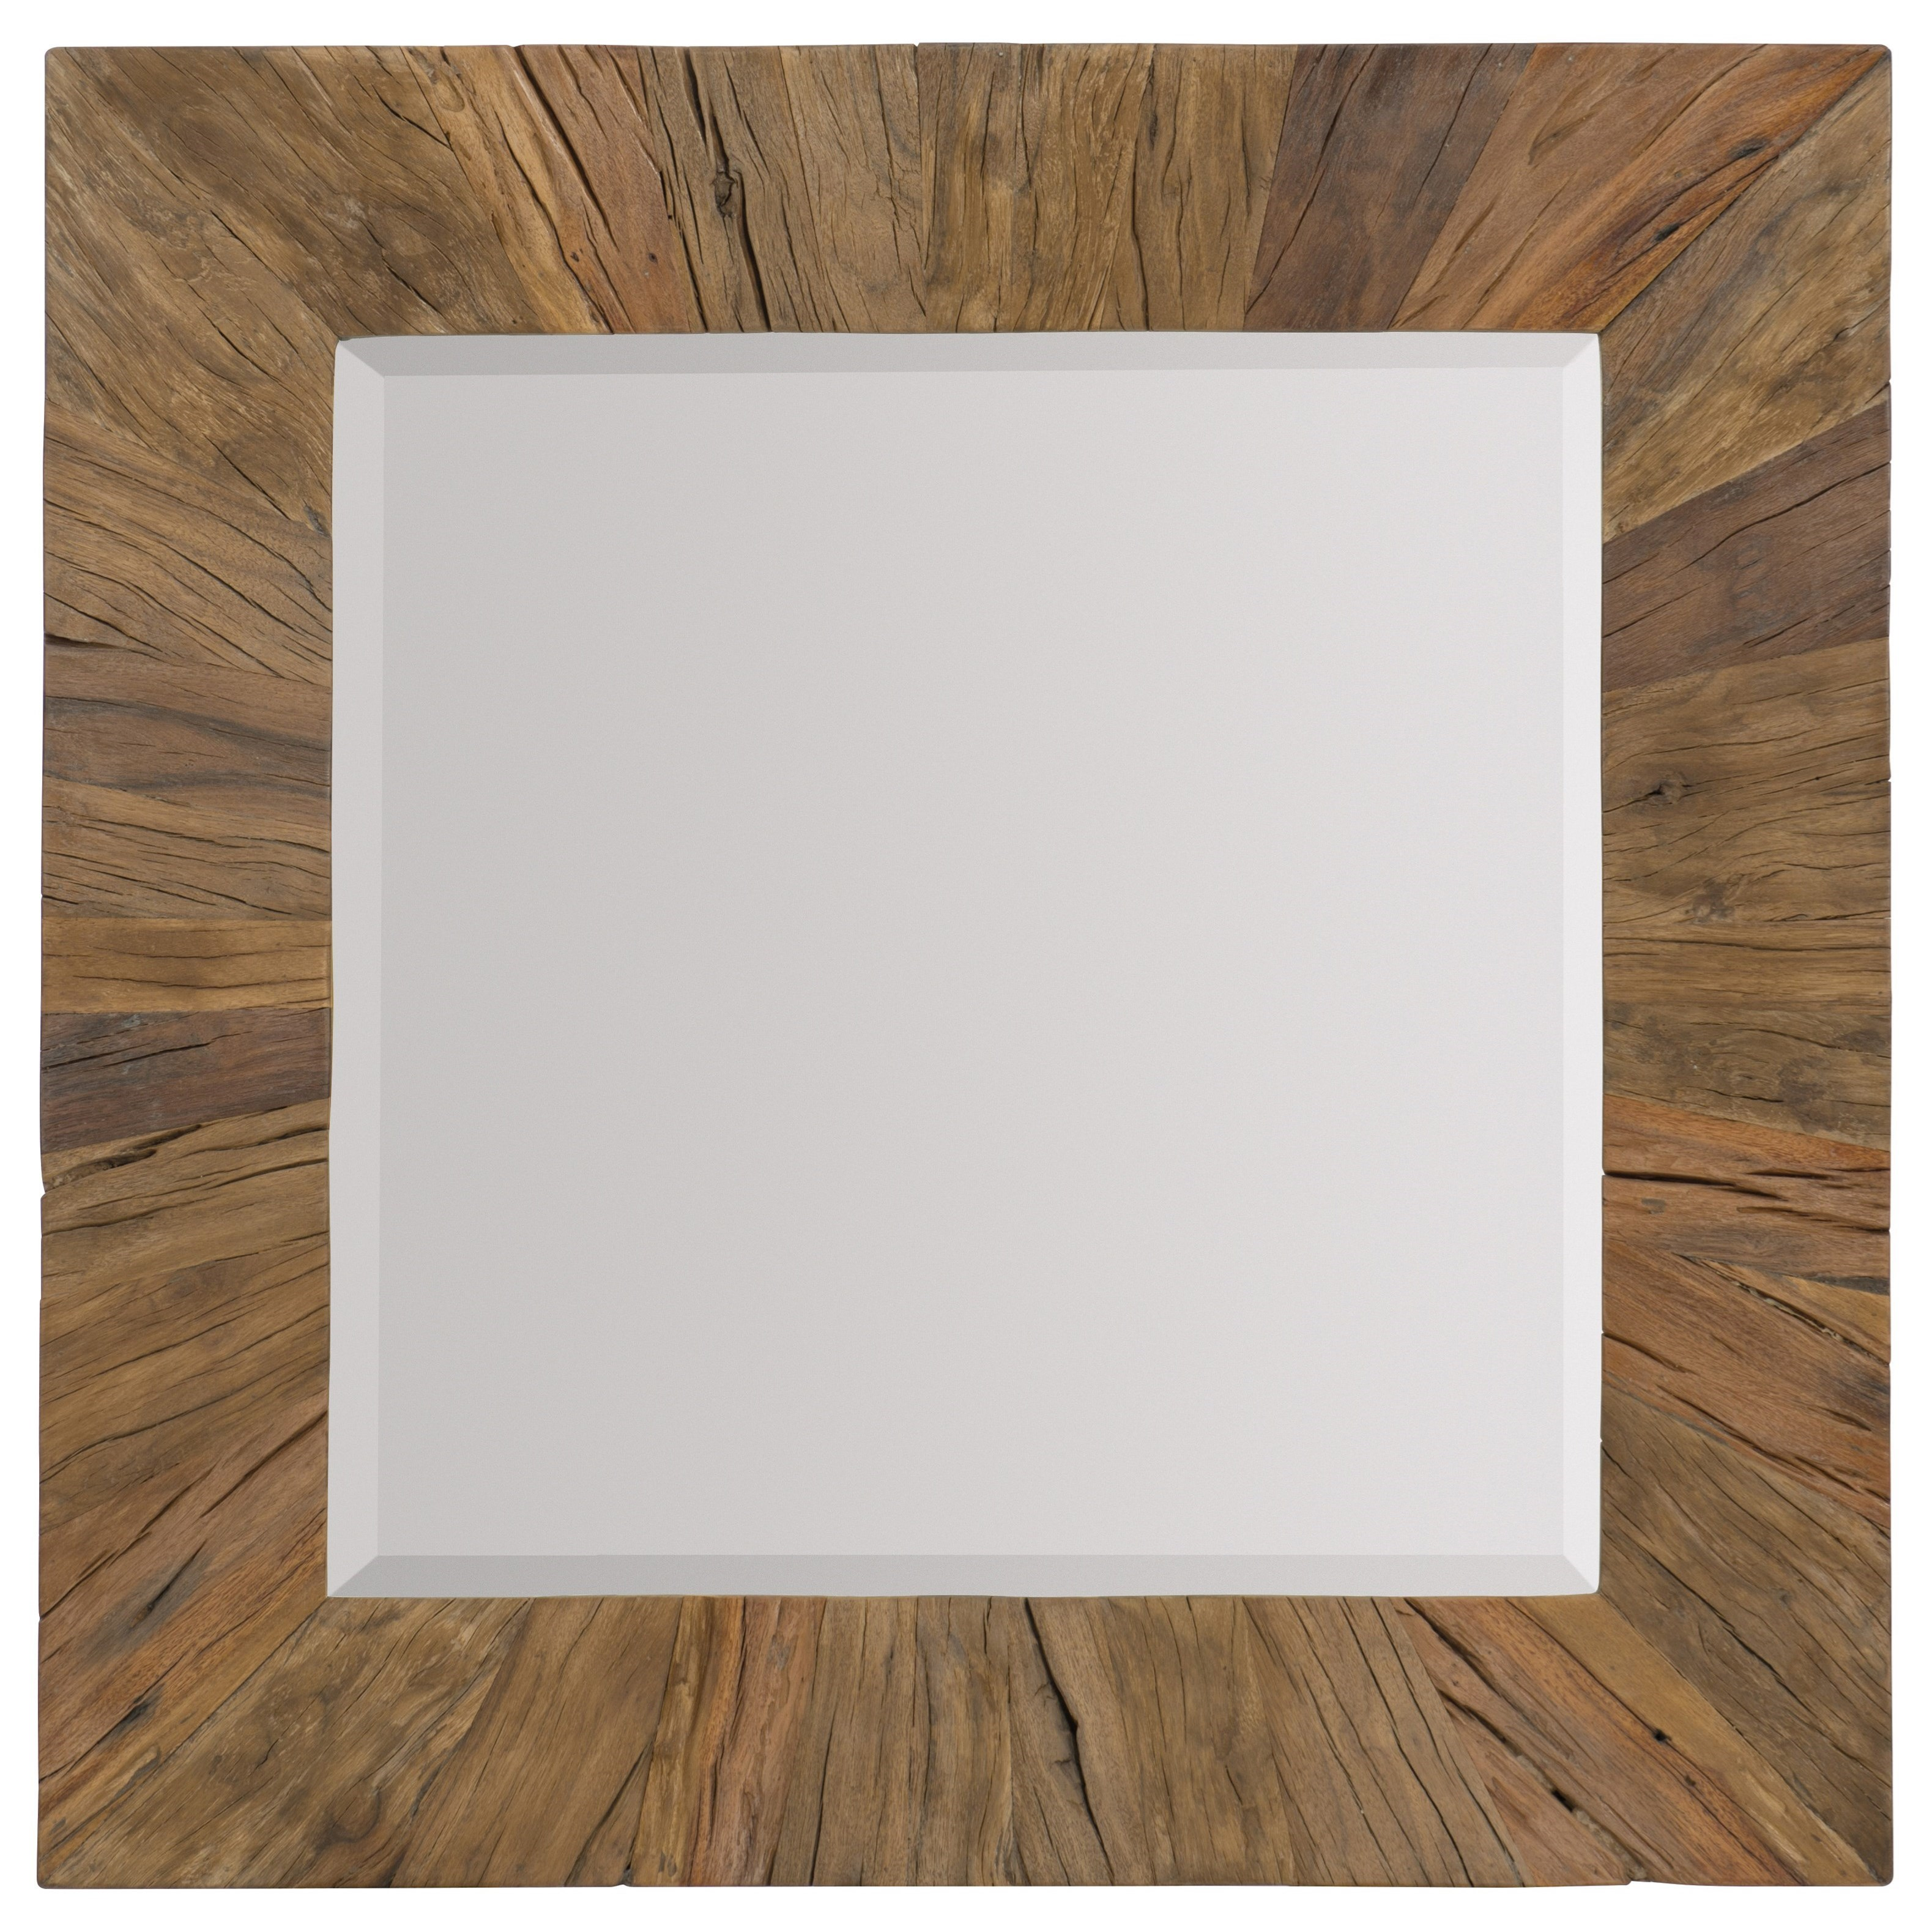 L'Usine Square Mirror by Hooker Furniture at Alison Craig Home Furnishings